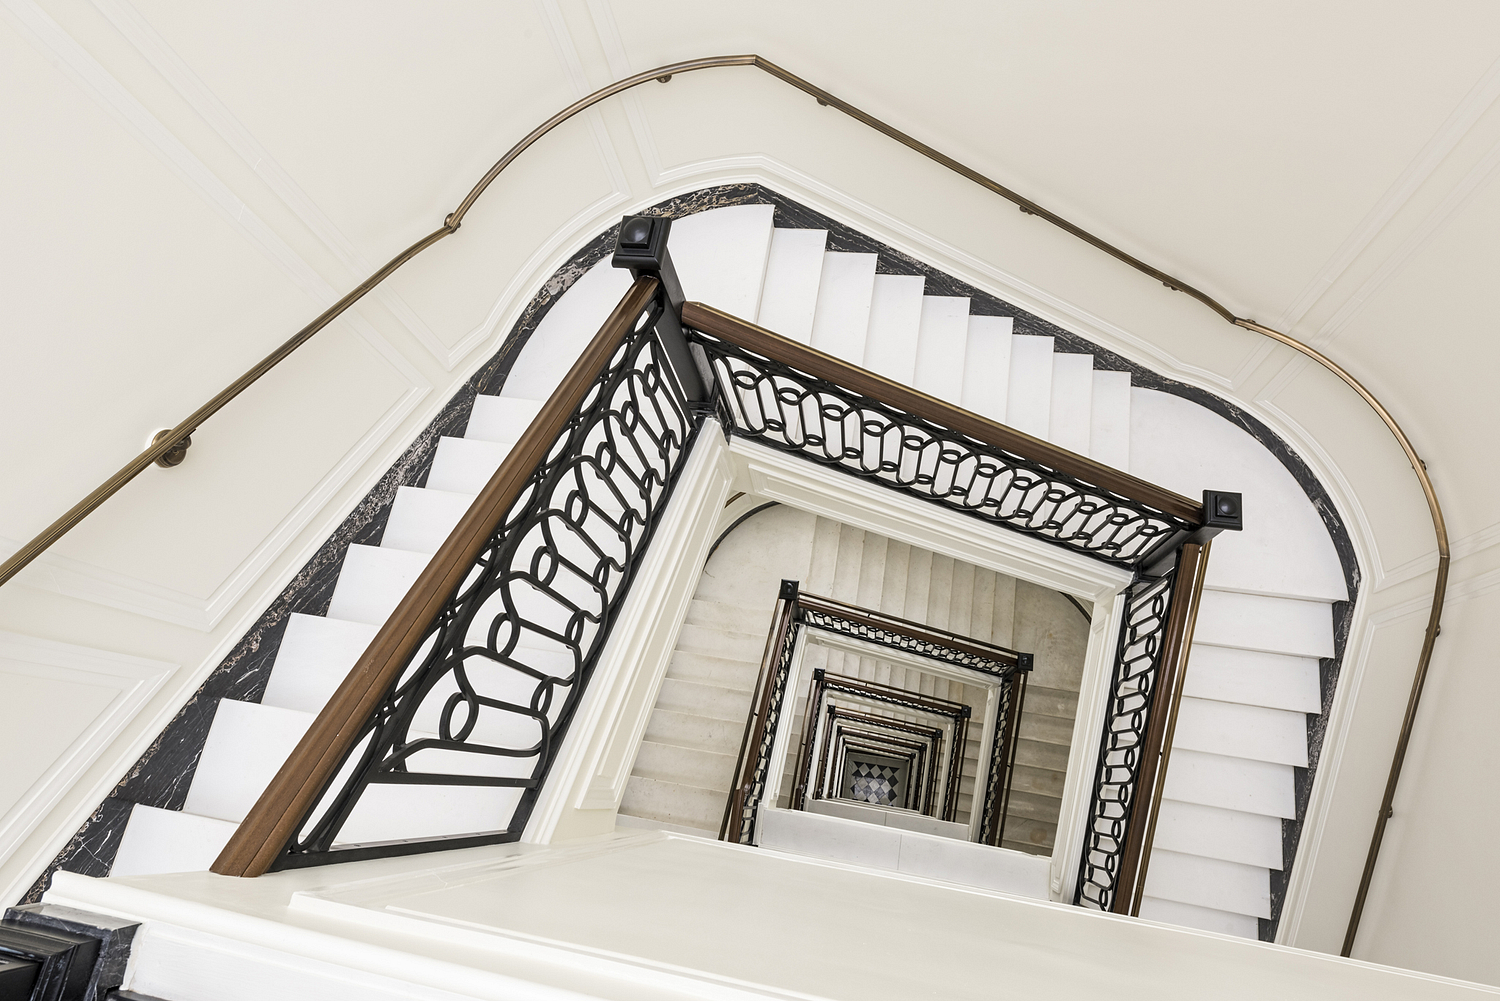 Staircase view with bronze handrail, Washington DC